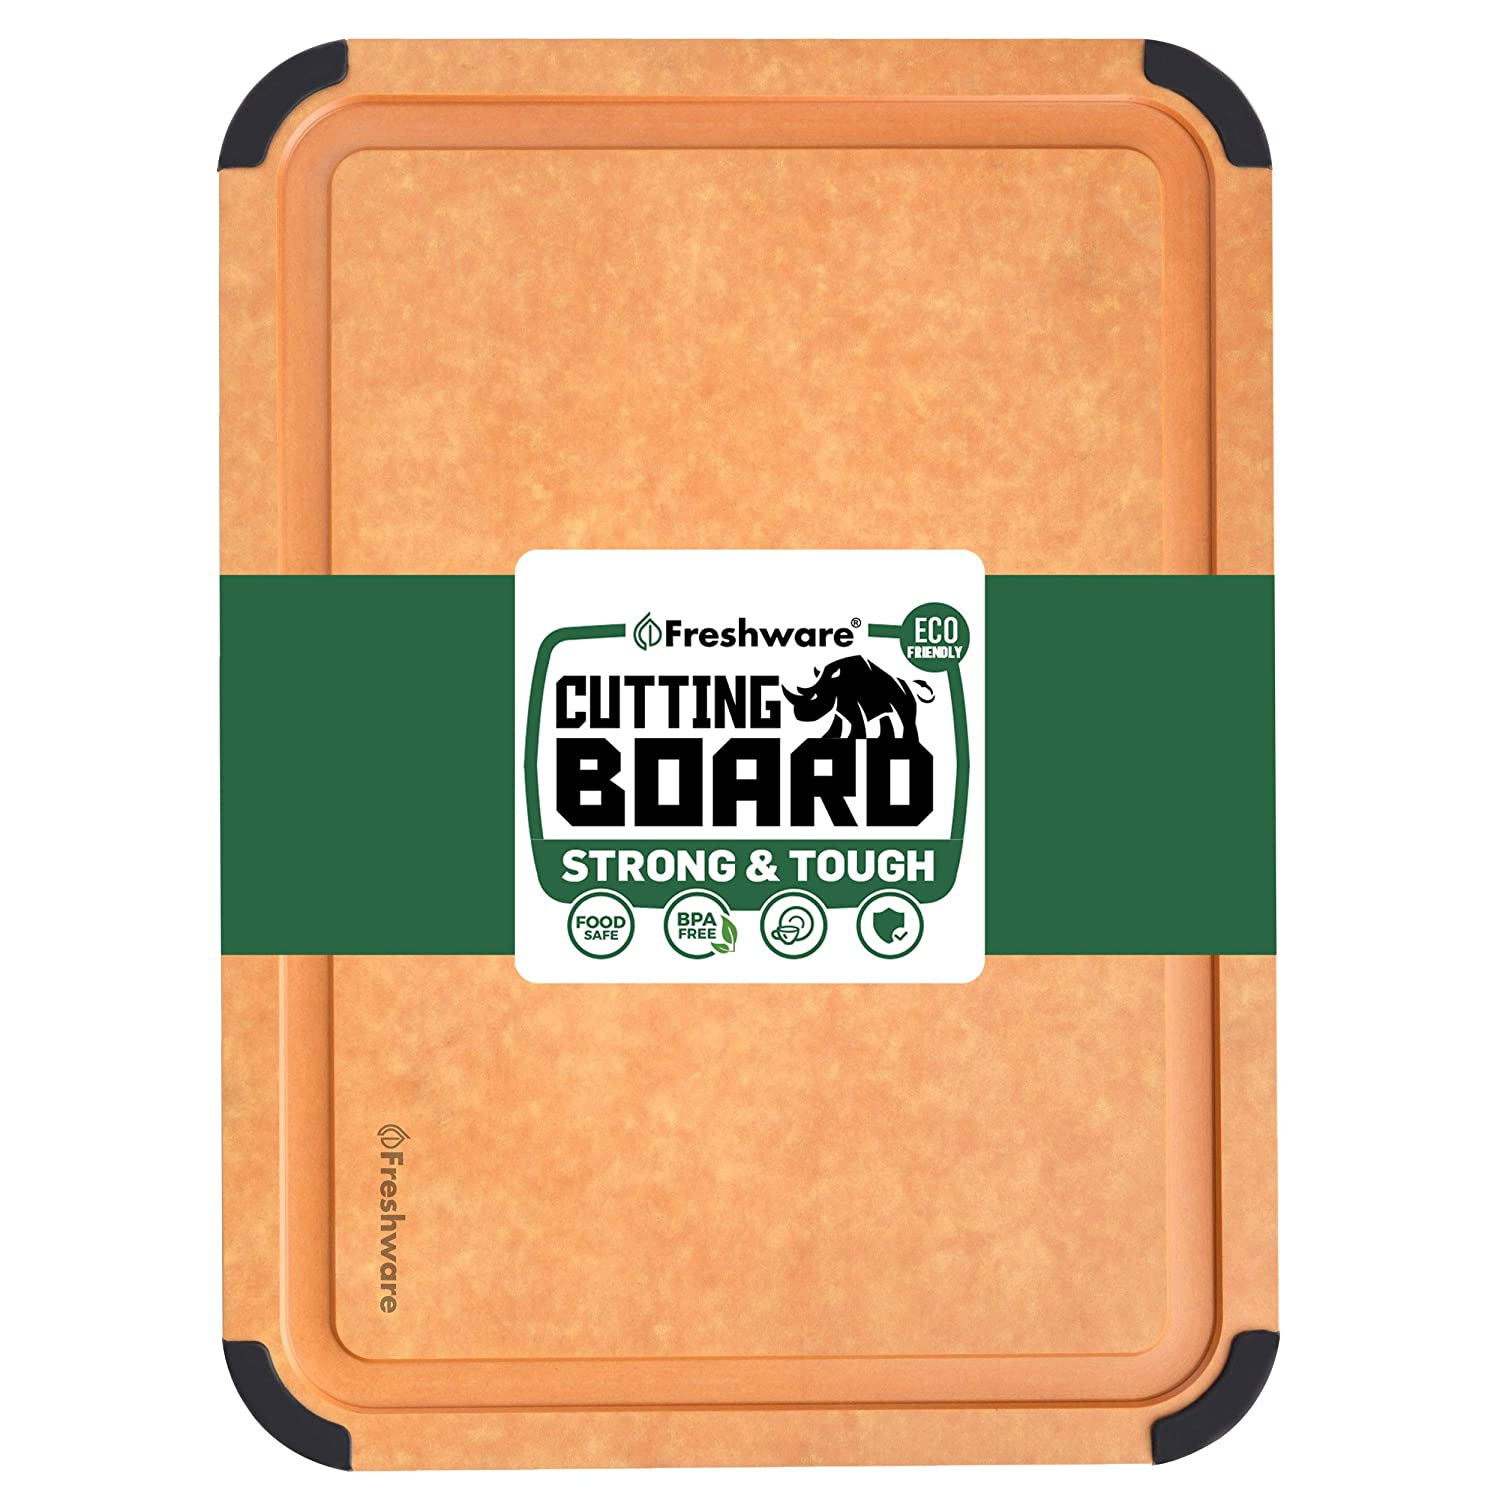 Cutting Board for Kitchen Dishwasher Safe, Wood Fiber Cutting Board, Eco-Friendly, Non-Slip, Juice Grooves, Non-Porous, BPA Free, Large Cutting Board, 17.3 x 13-inch, Natural Slate